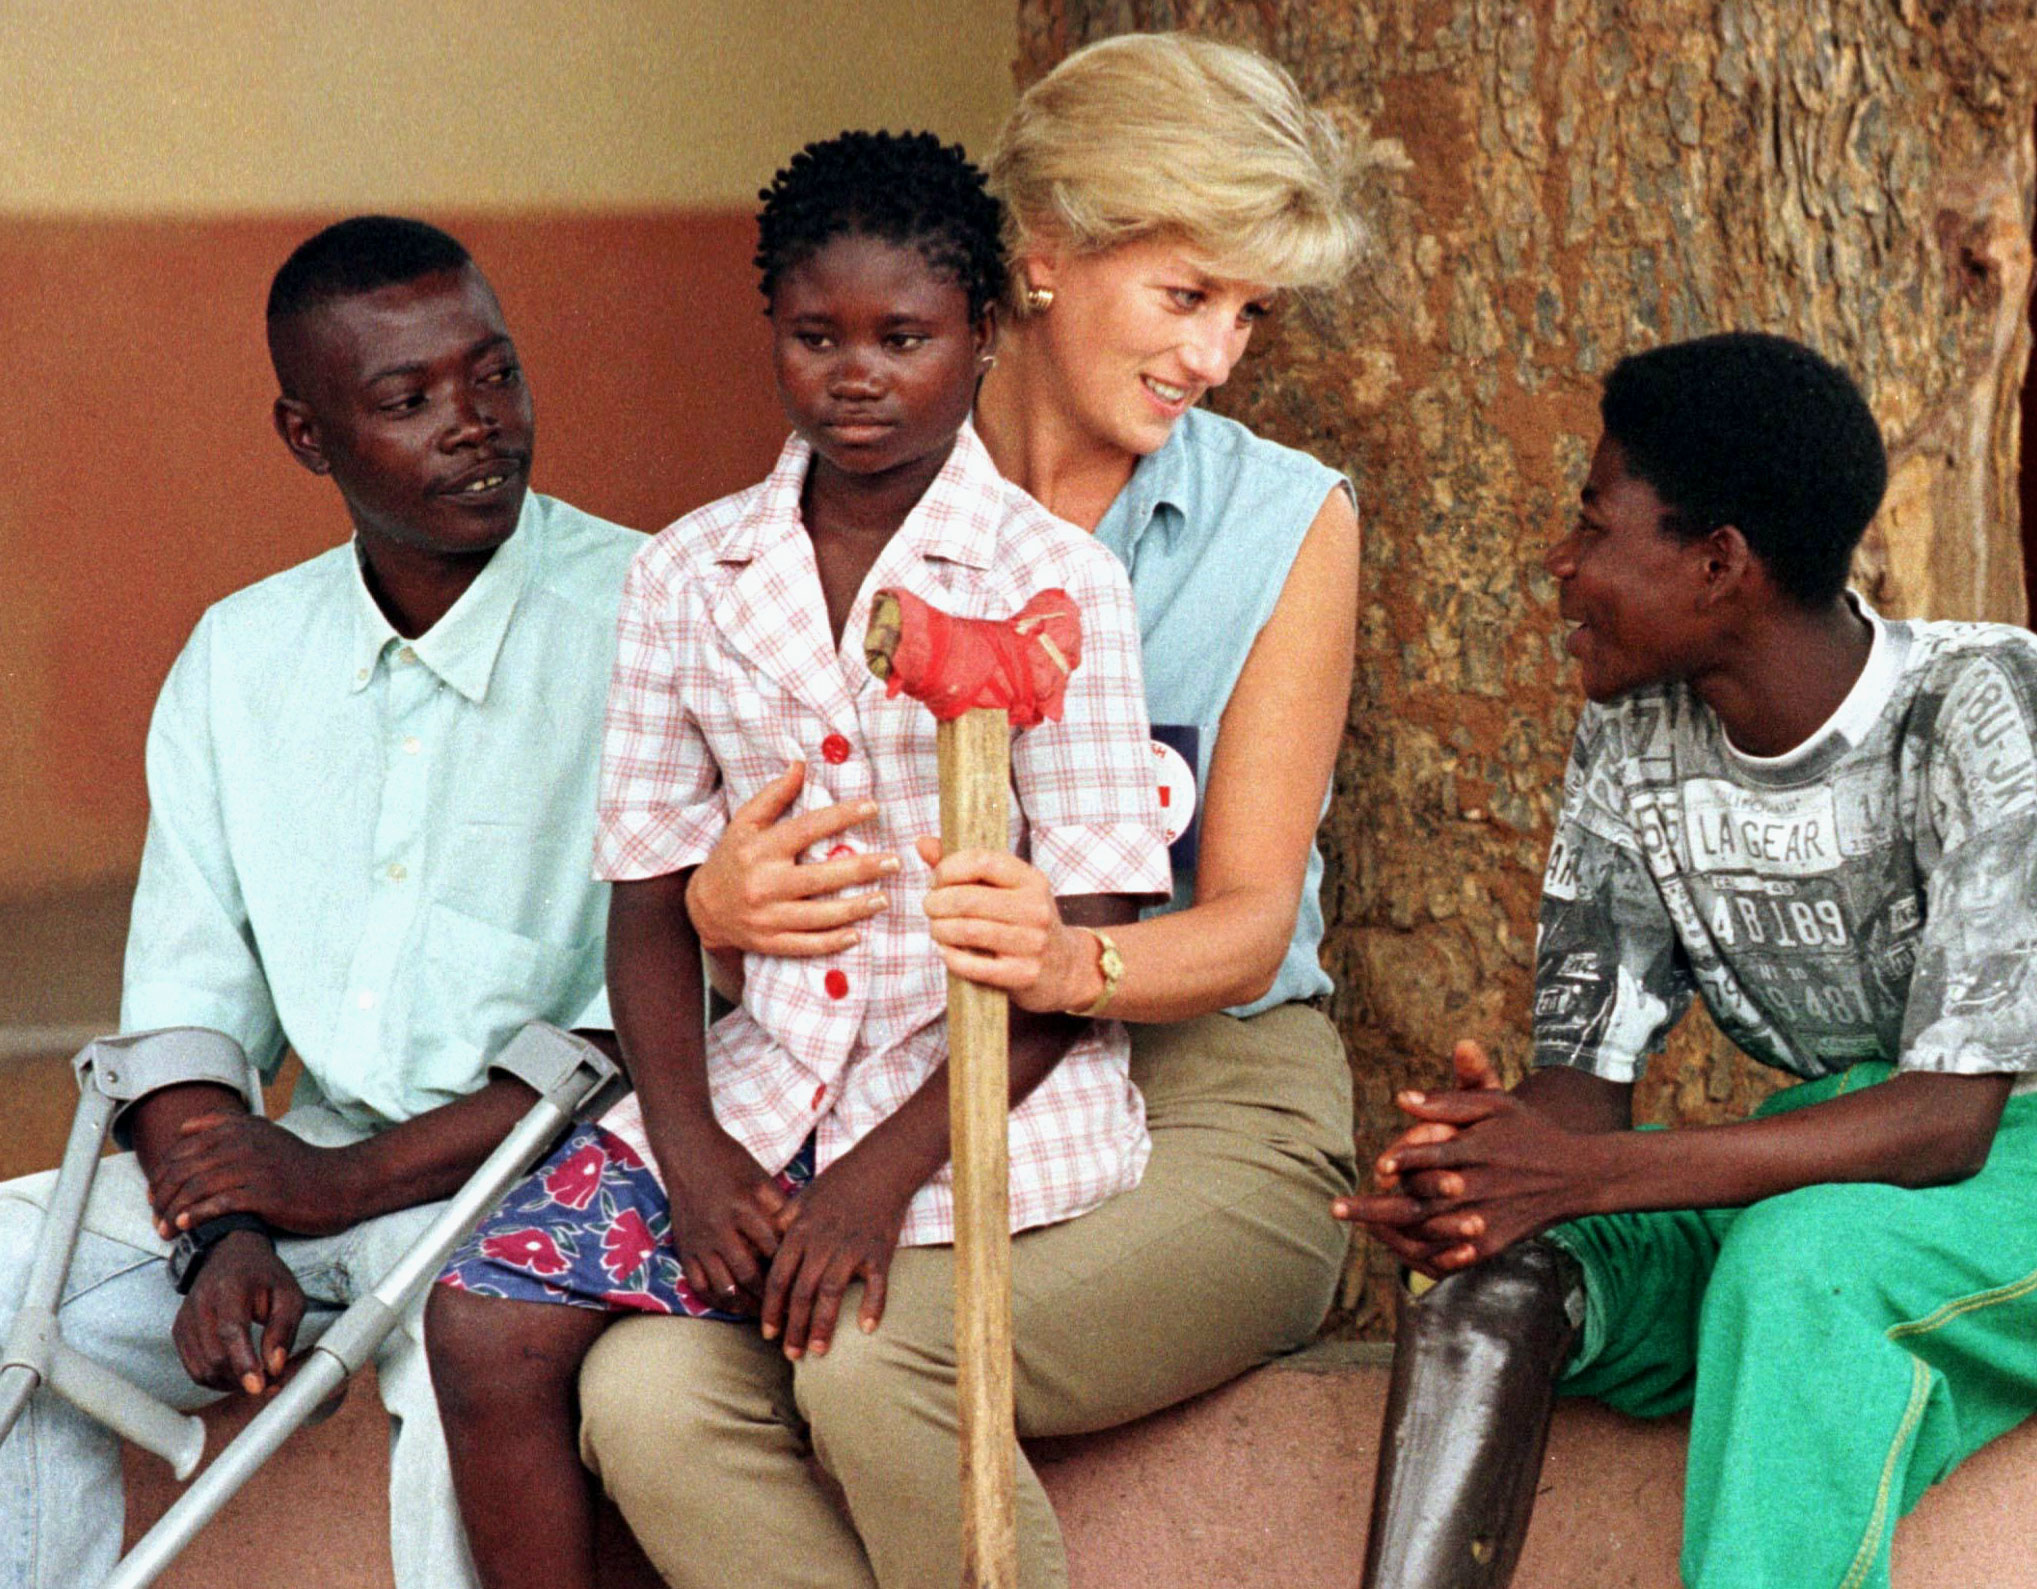 The Princess of Wales met with victims of landmines during a visit to Angola on Jan. 14, 1997. Photo by Jose Manuel Ribeiro/Reuters